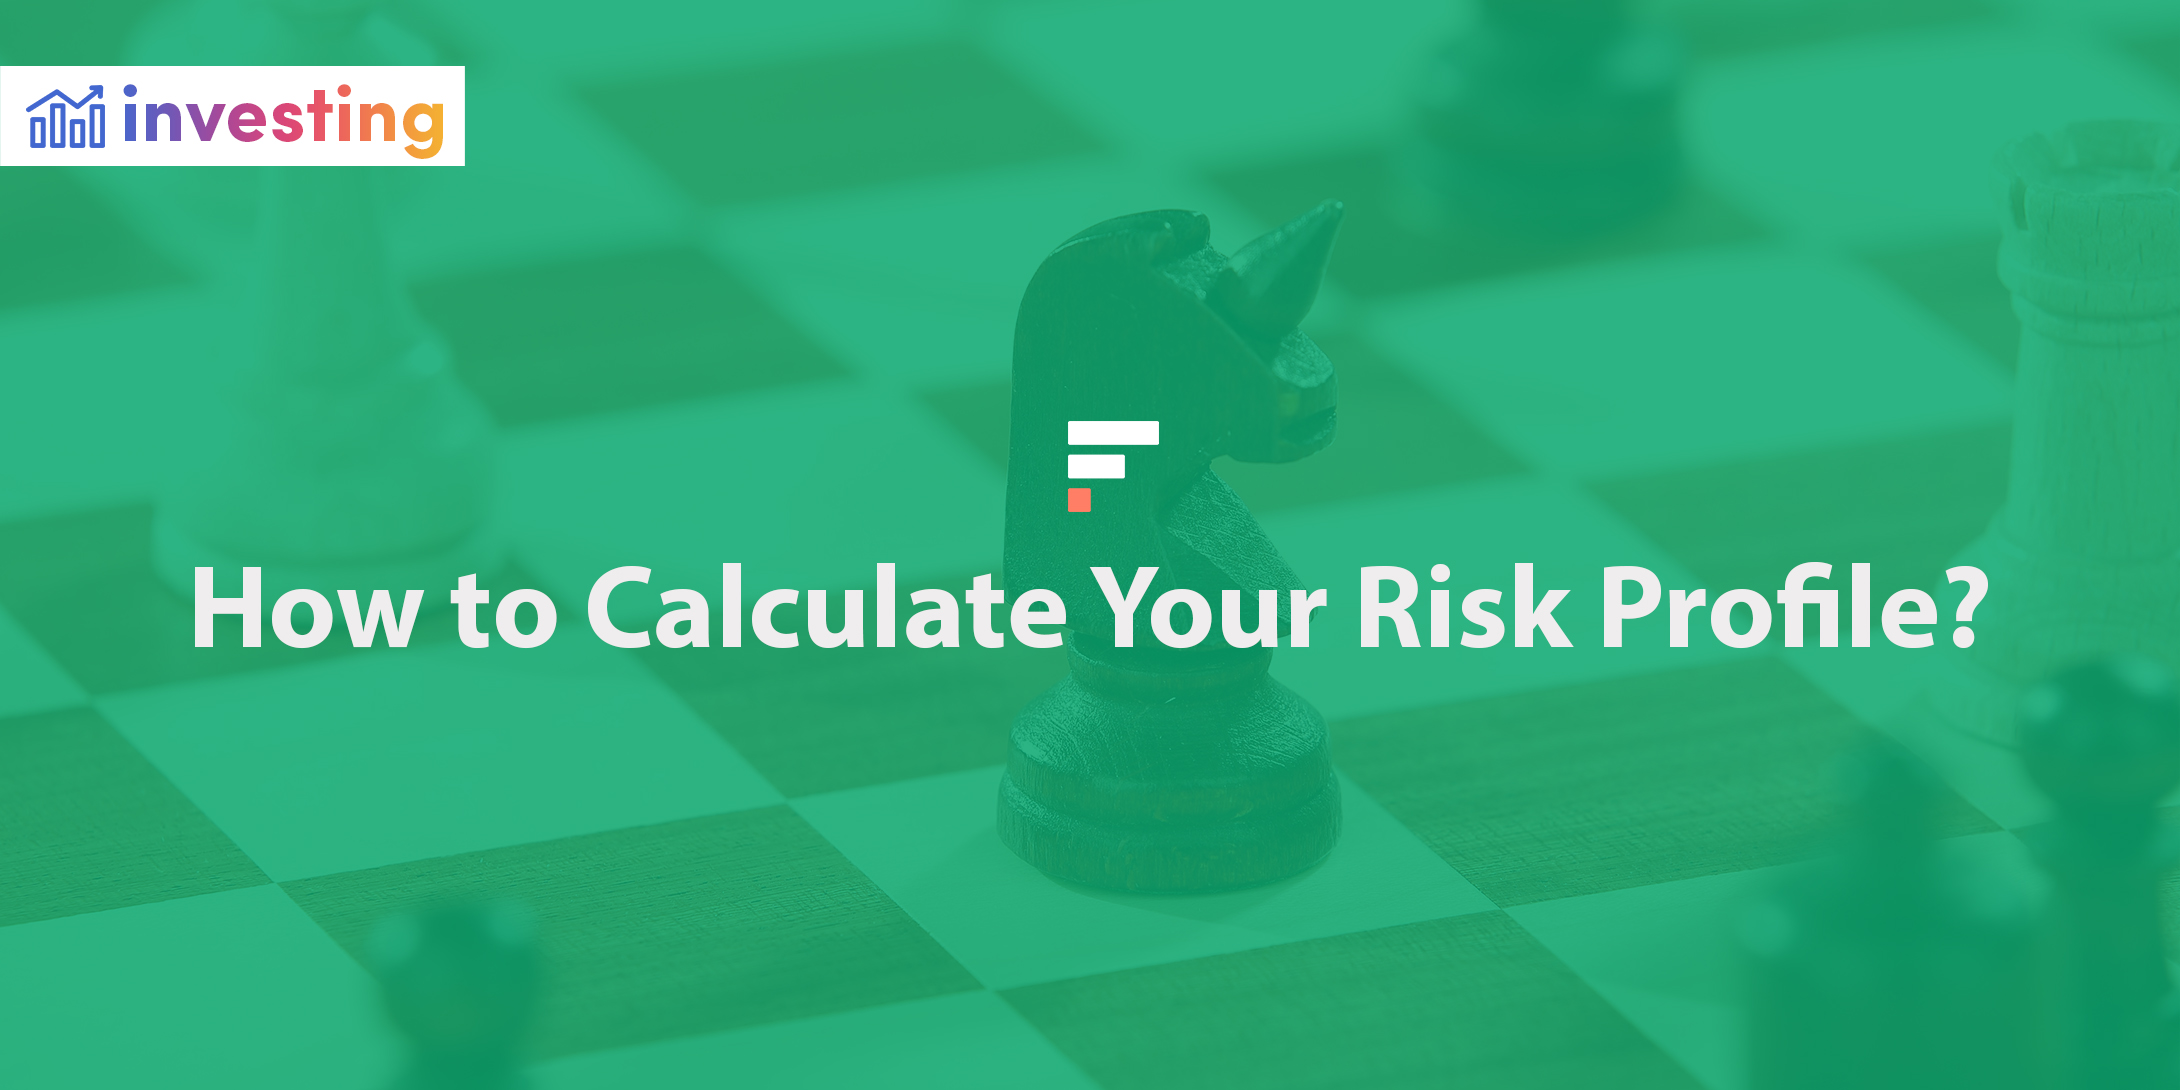 How to Calculate Your Risk Profile